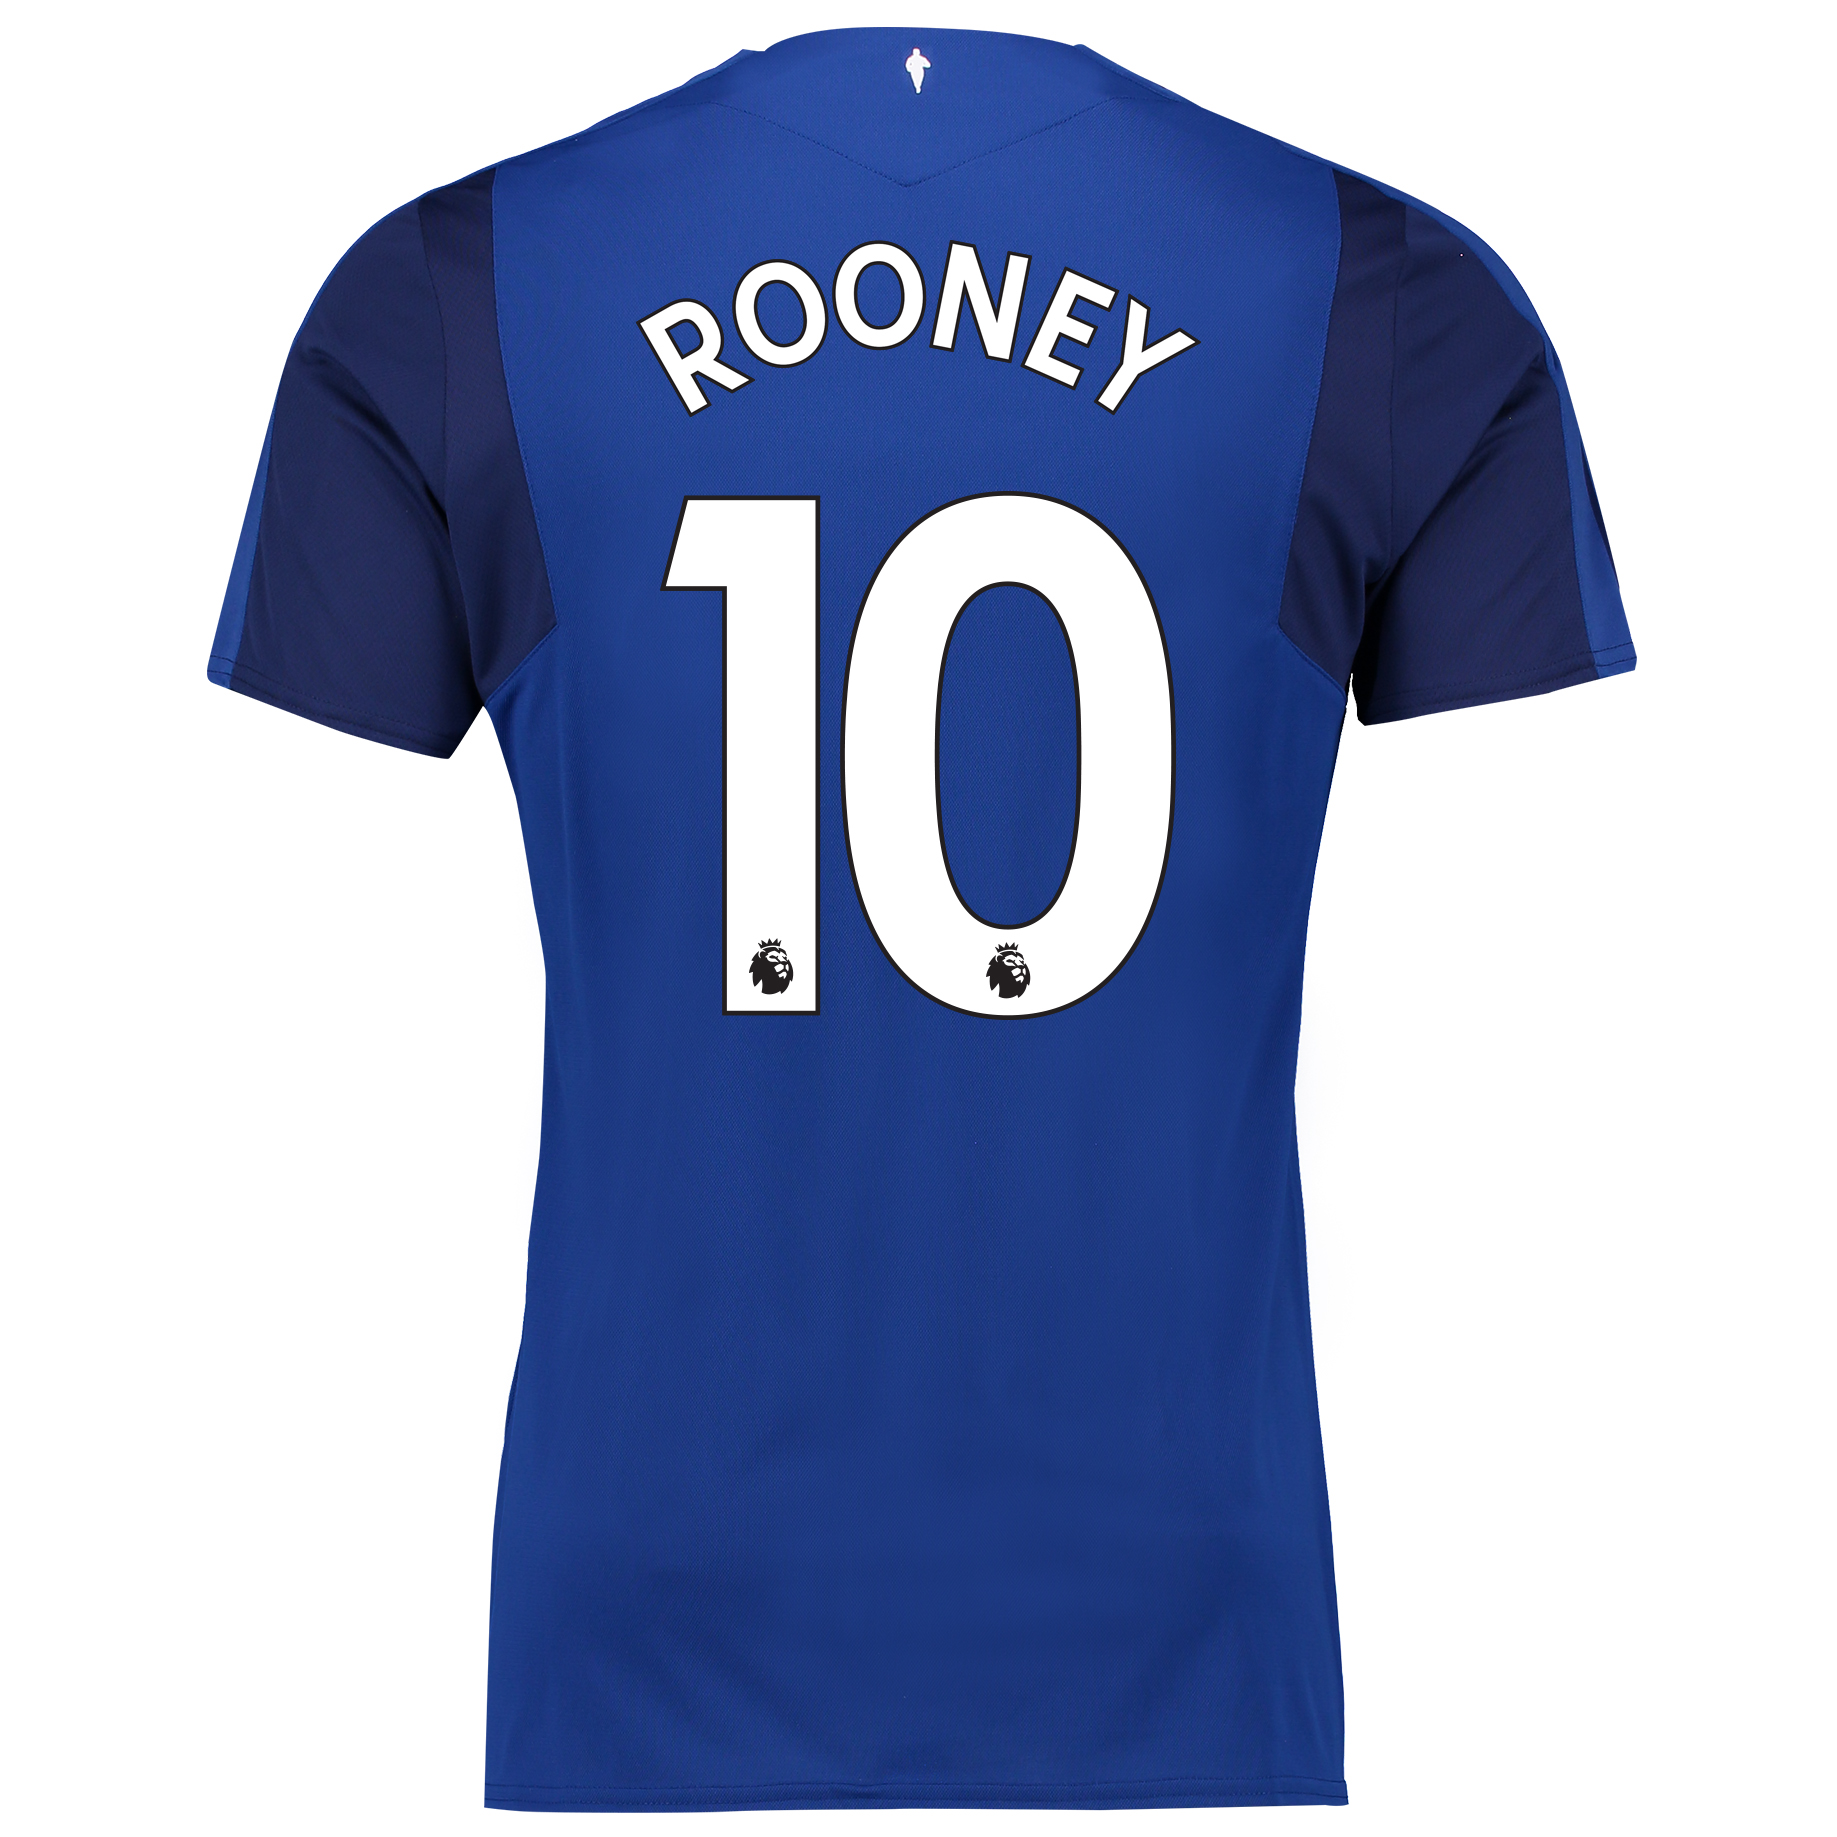 Everton Home Shirt 2017/18 with Rooney 10 printing